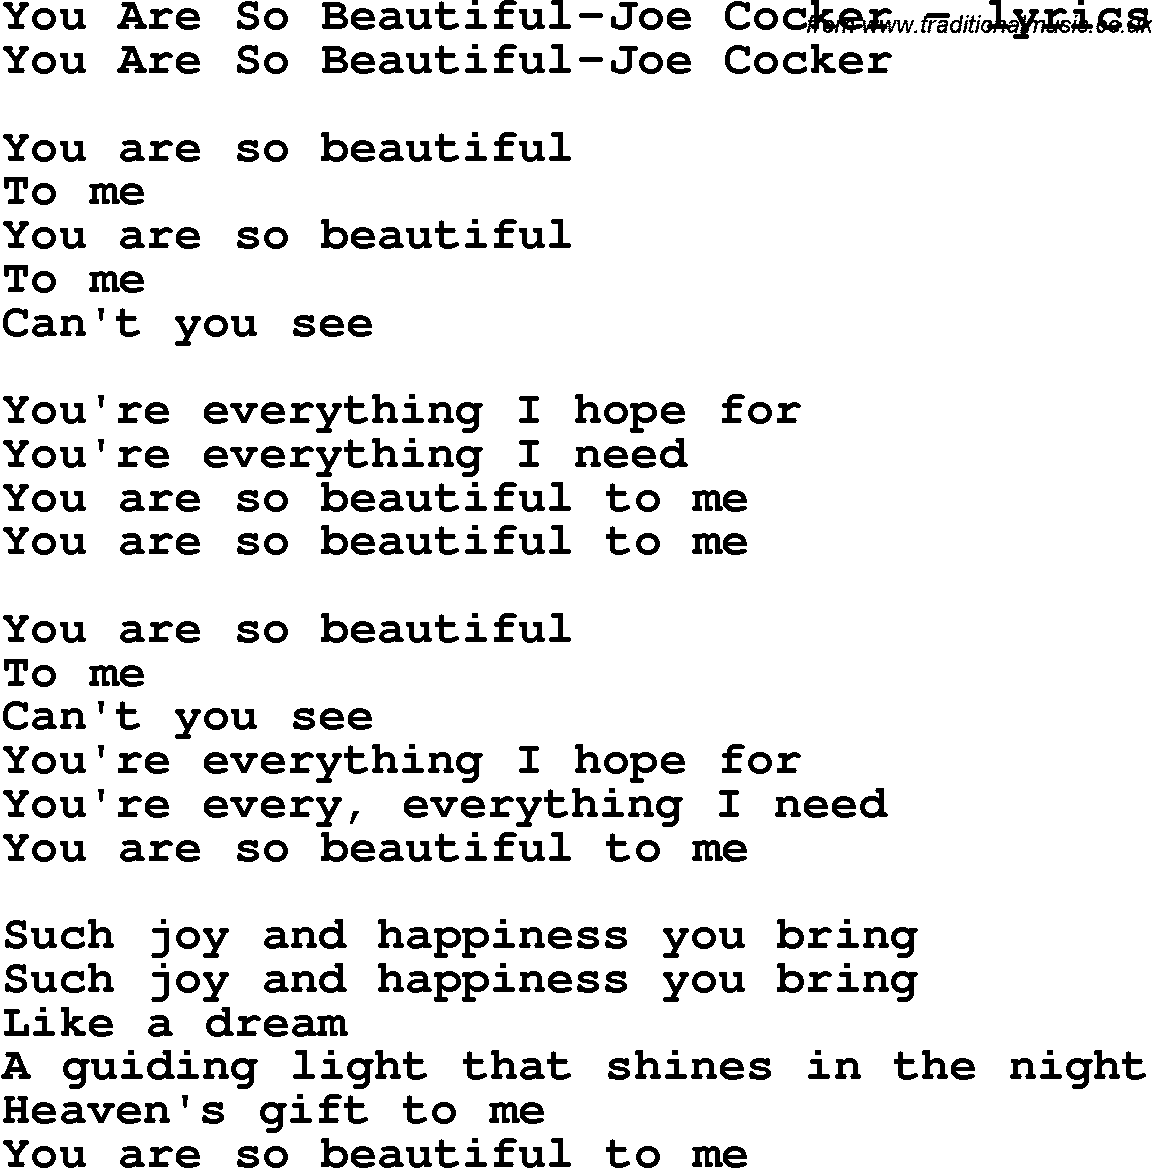 Love Song Lyrics Foryou Are So Beautiful Joe Cocker